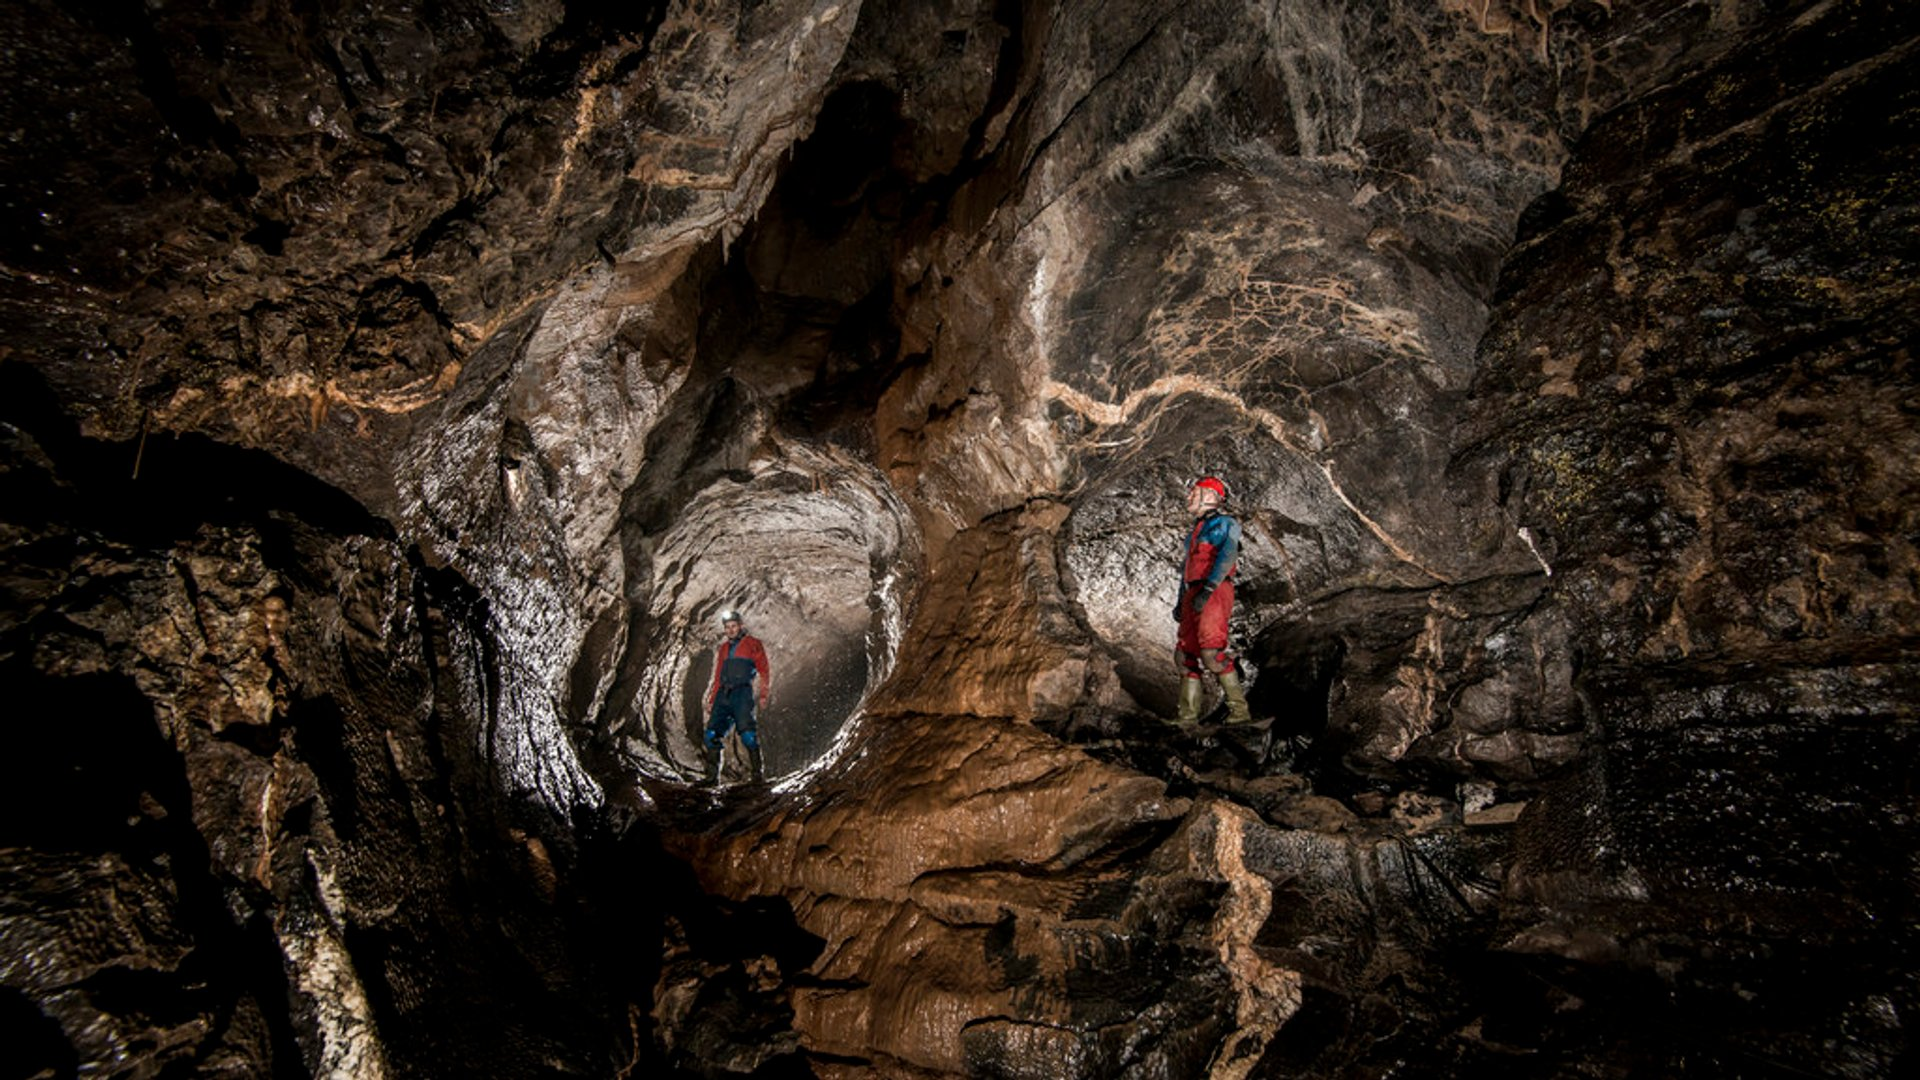 Dan-yr-Ogof, the National Showcaves Centre for Wales in Wales - Best Season 2020